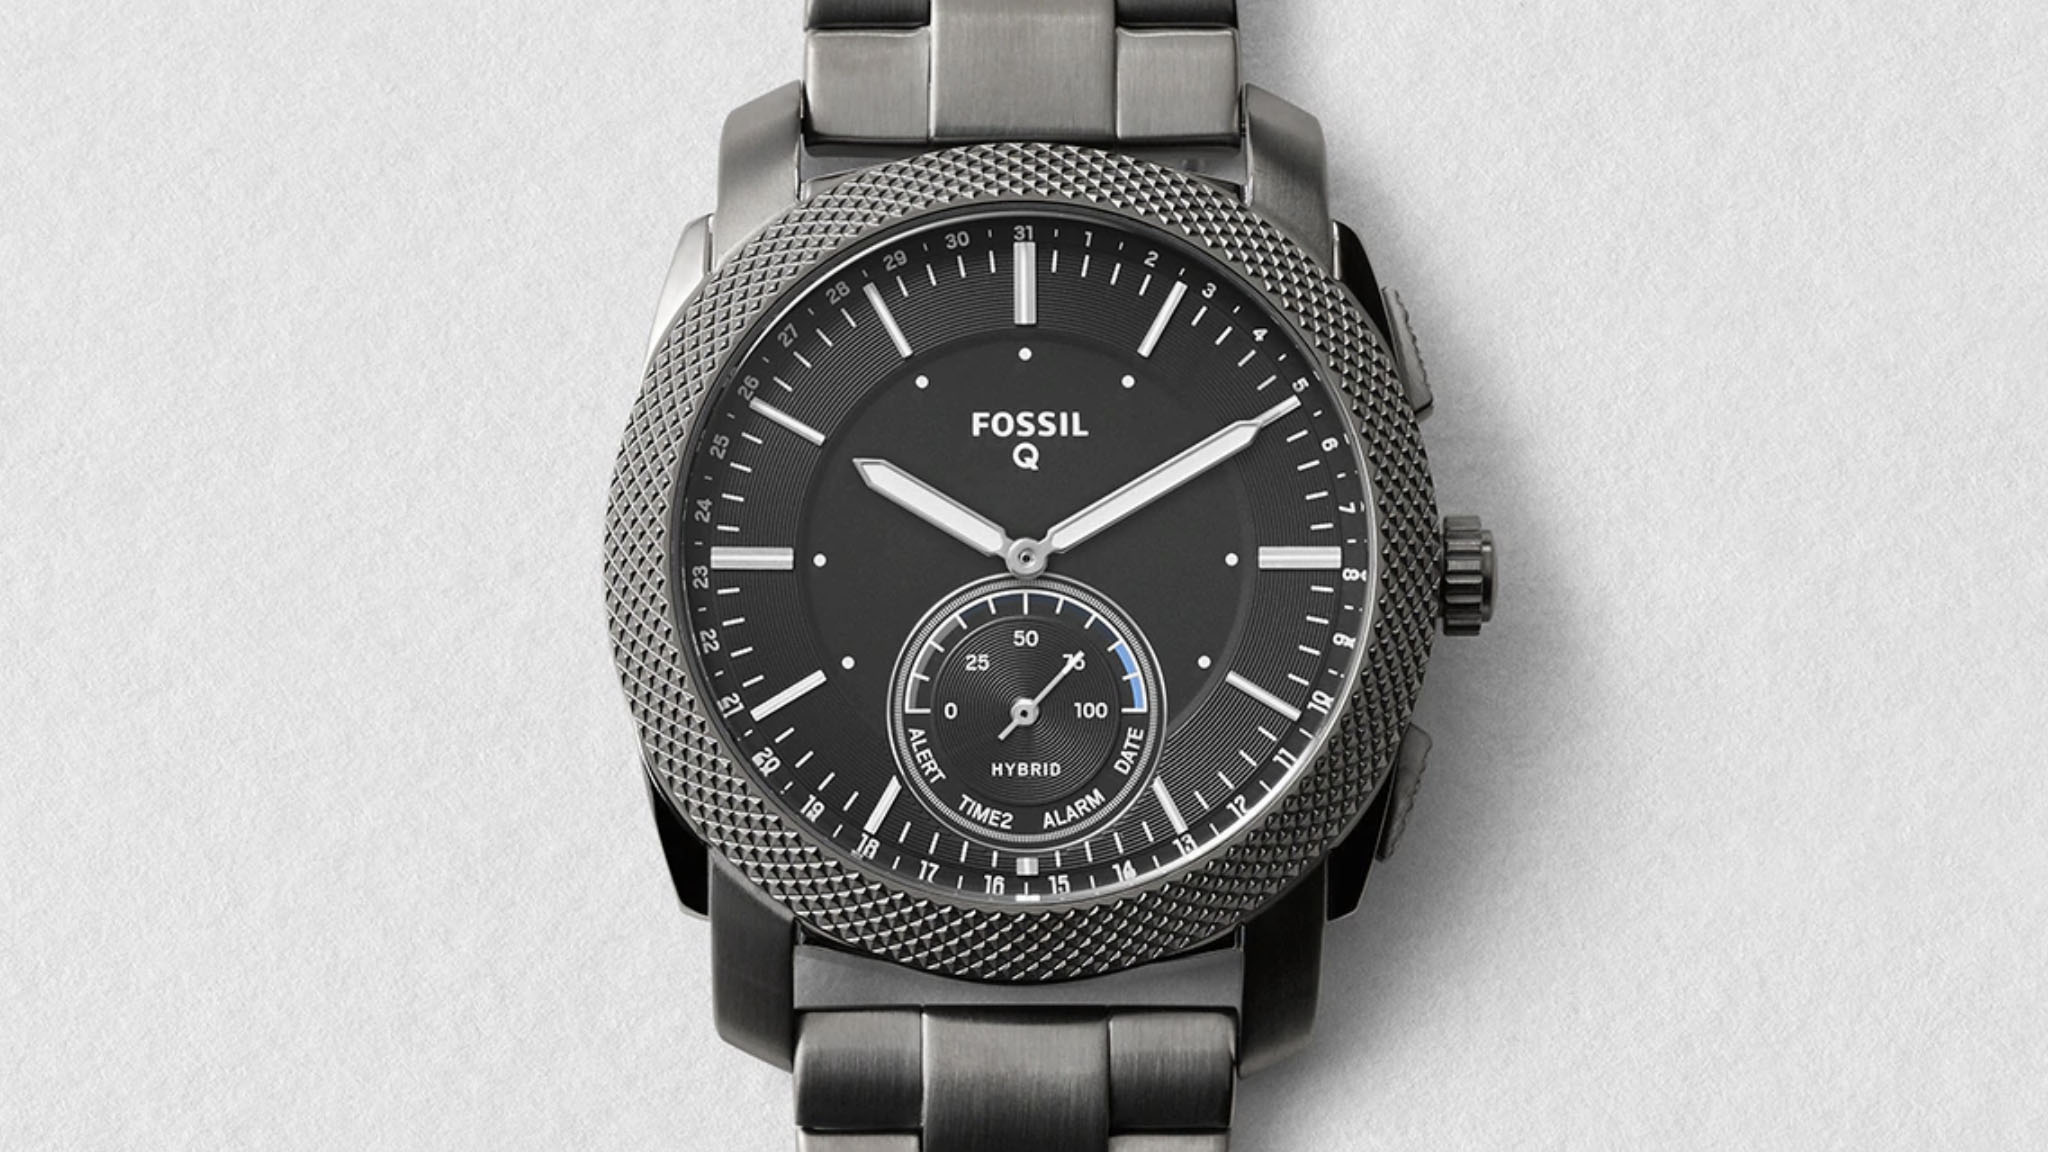 Google acquires Fossil smartwatch IP for $40 million | Nasi